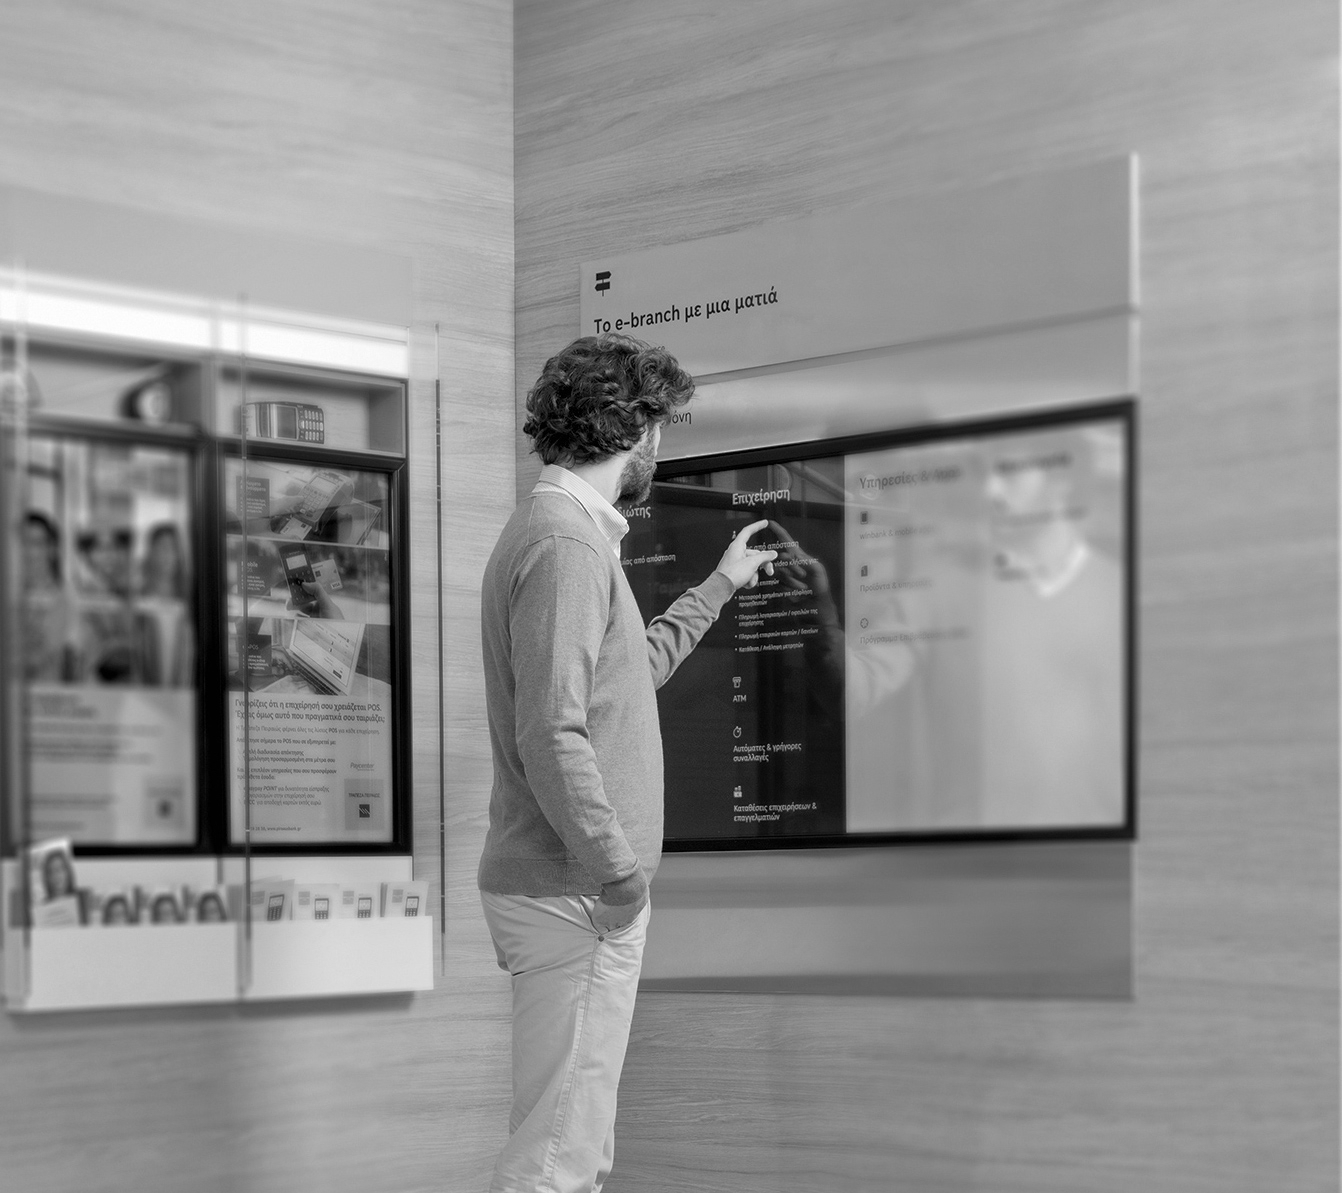 By creating the Piraeus Bank Music LibrarY we have effectively enhanced the brand experience and intensified brand loyalty. - The resulting aural identity and audible brand space goes hand in hand with the friendly environment, leaves a lasting impression on customers and has also become an integral part of the employees' daily work.